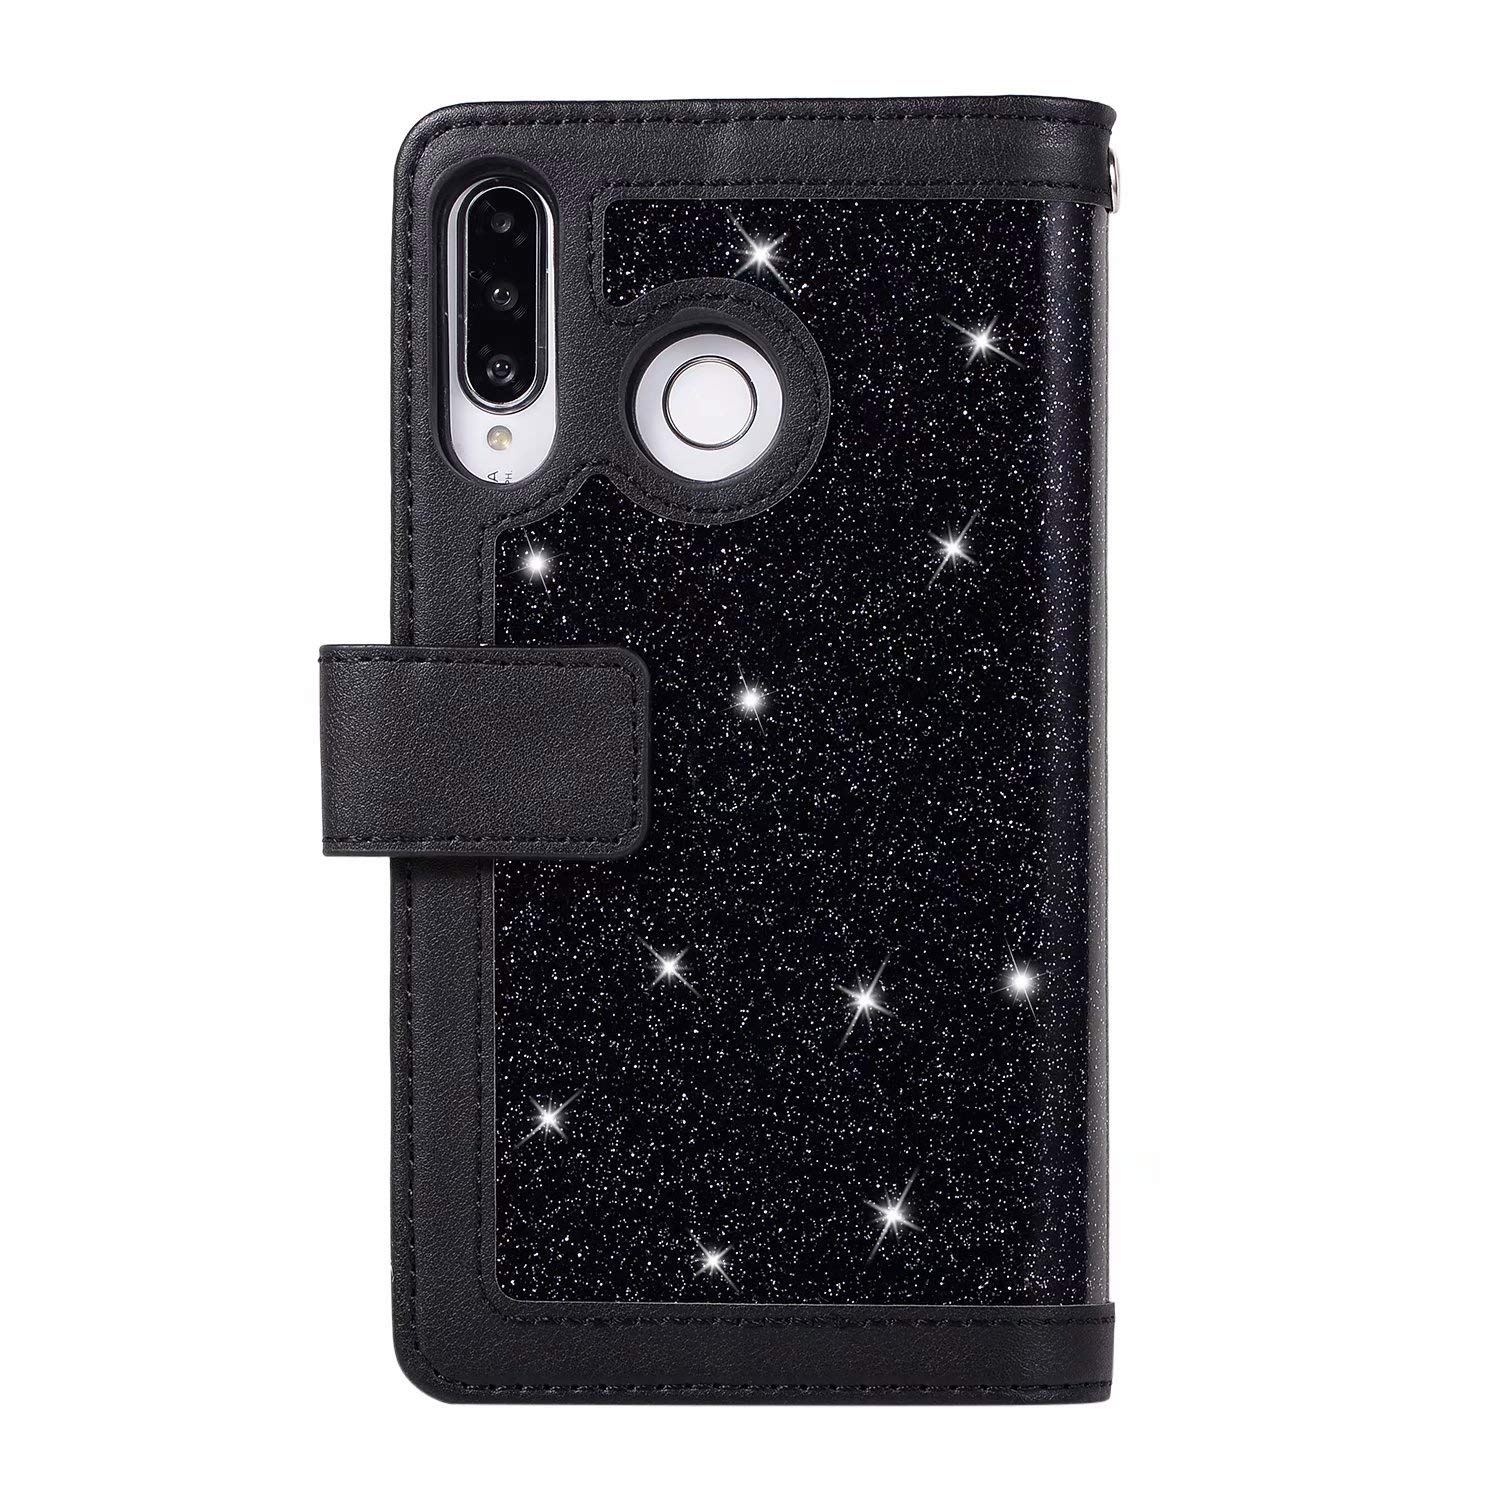 Homikon PU Leather Case Zipper Shiny Glitter Rhinestone Protective Case Wallet Leather Book Style Phone Case 9 Card Slots Compatible with Huawei P30 Lite Black